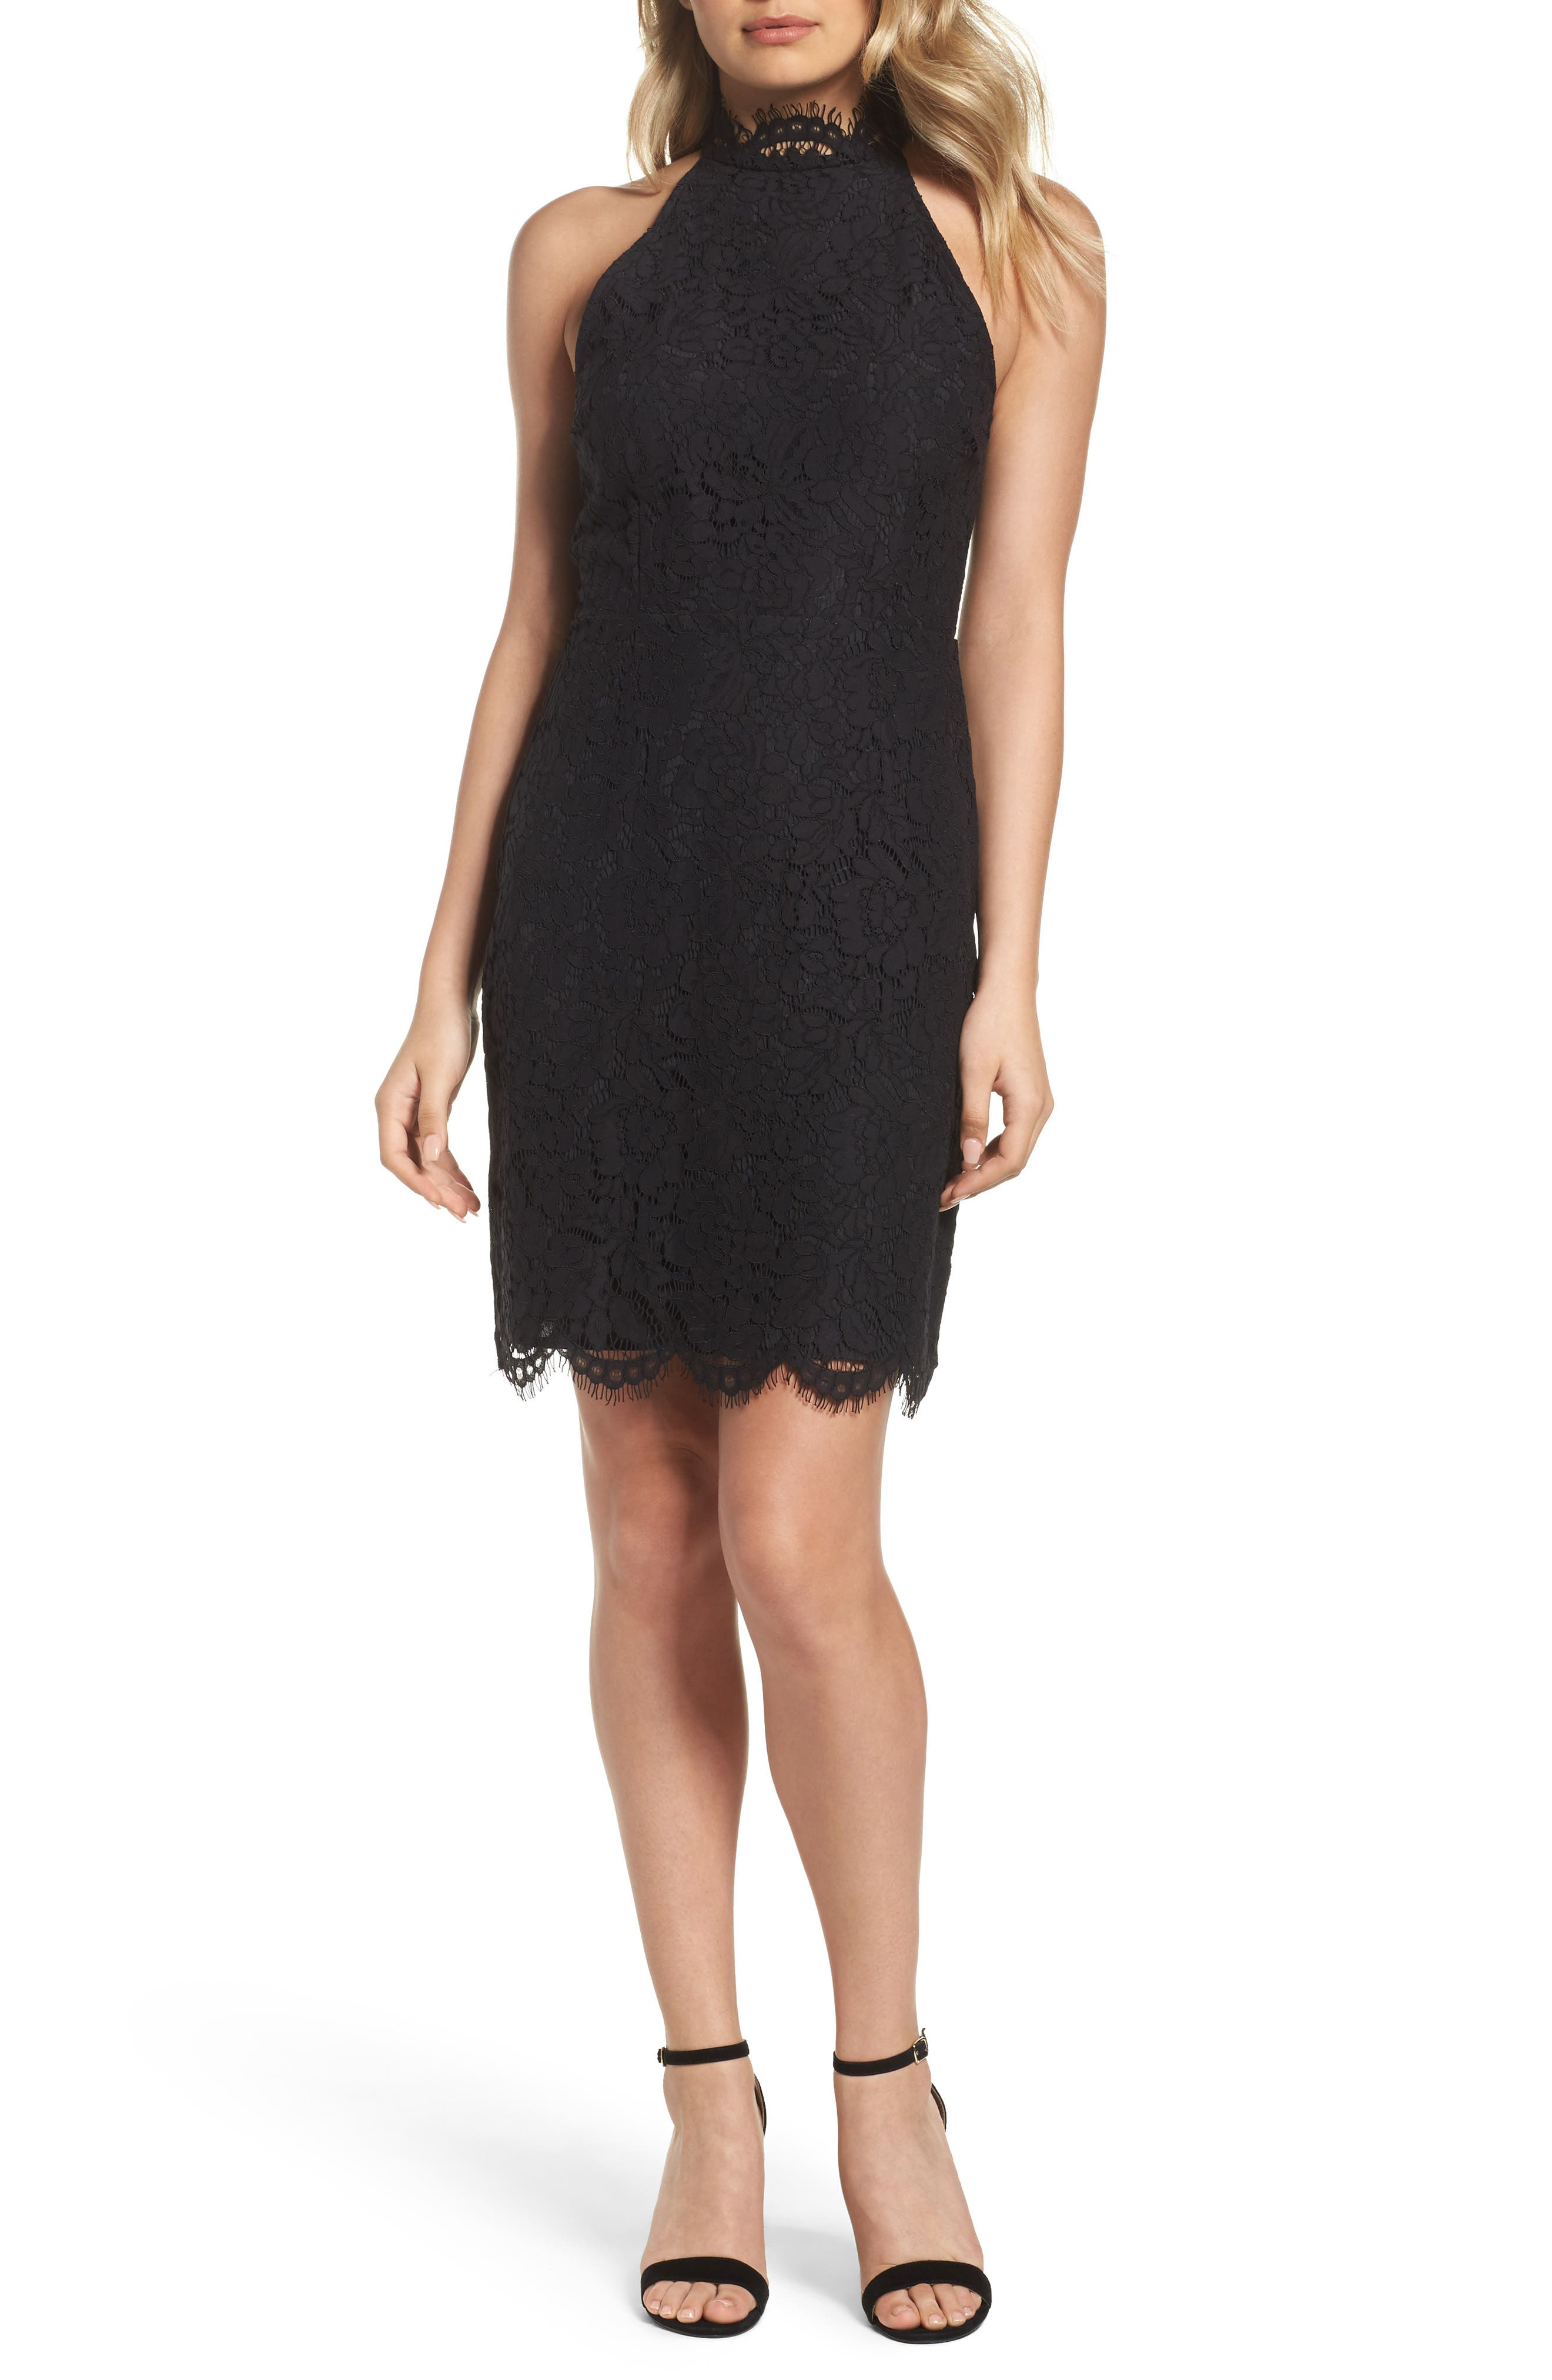 BB DAKOTA Cara High Neck Lace Cocktail Dress, Main, color, 001